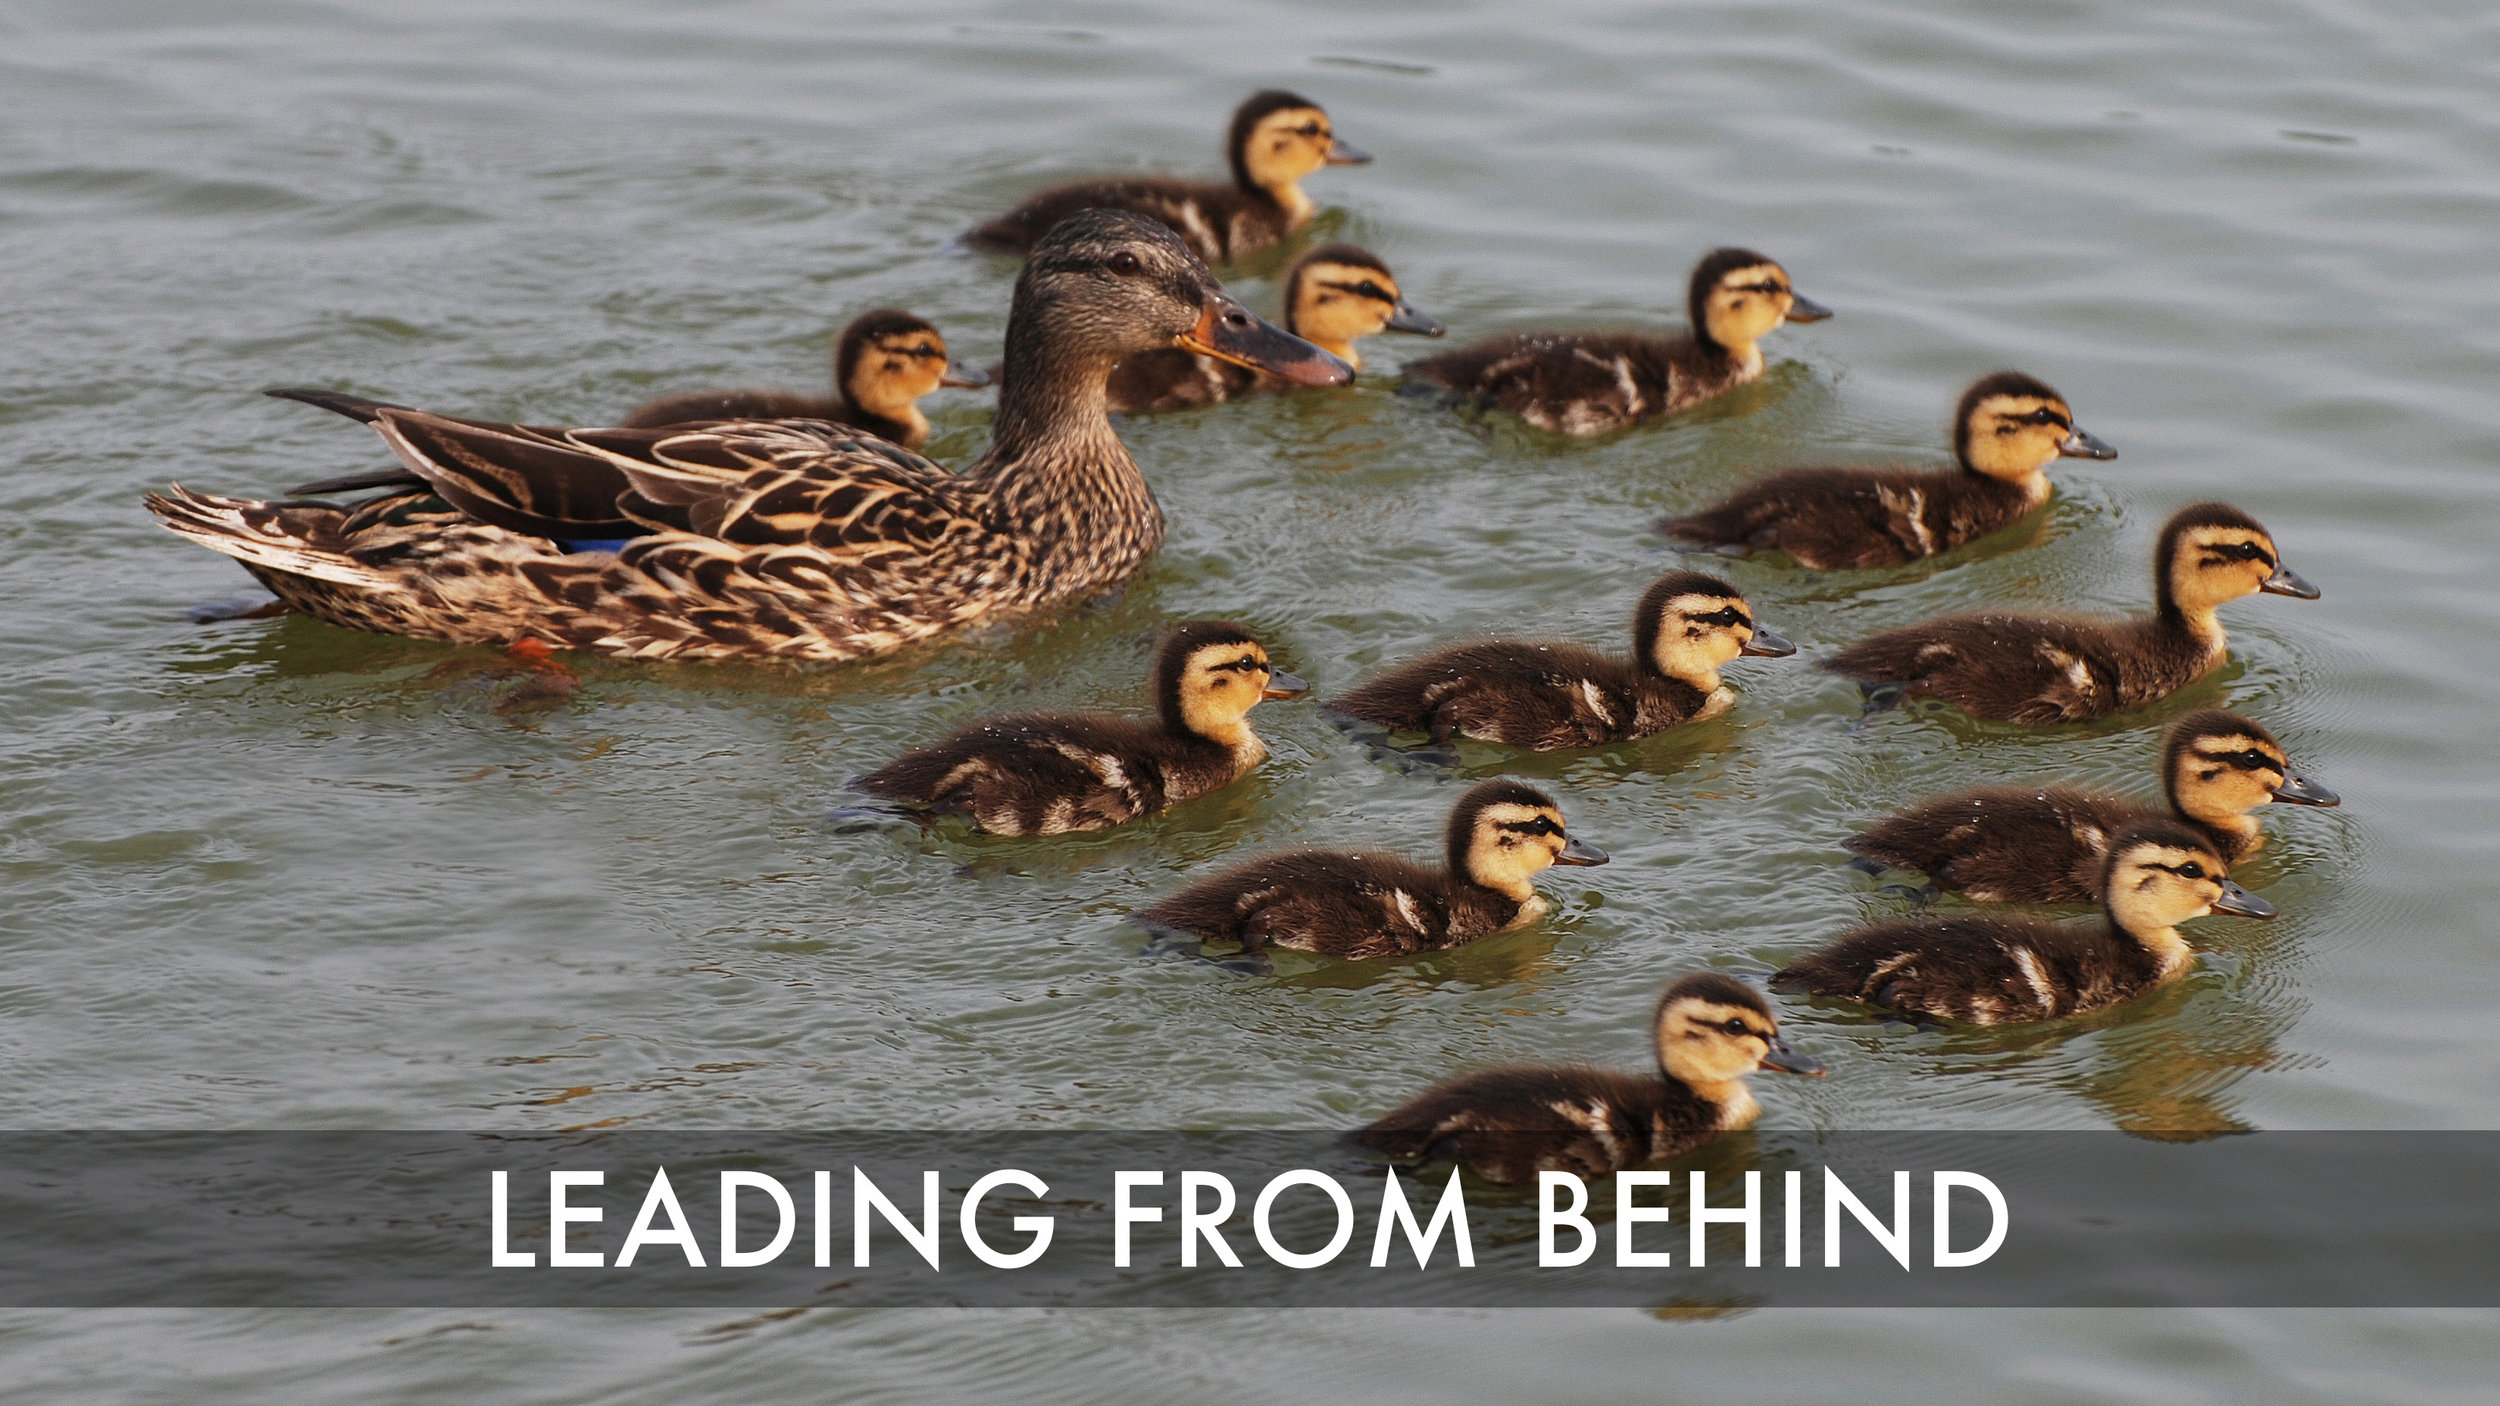 Leading from Behind - 12 Ducklings and Mom.jpg